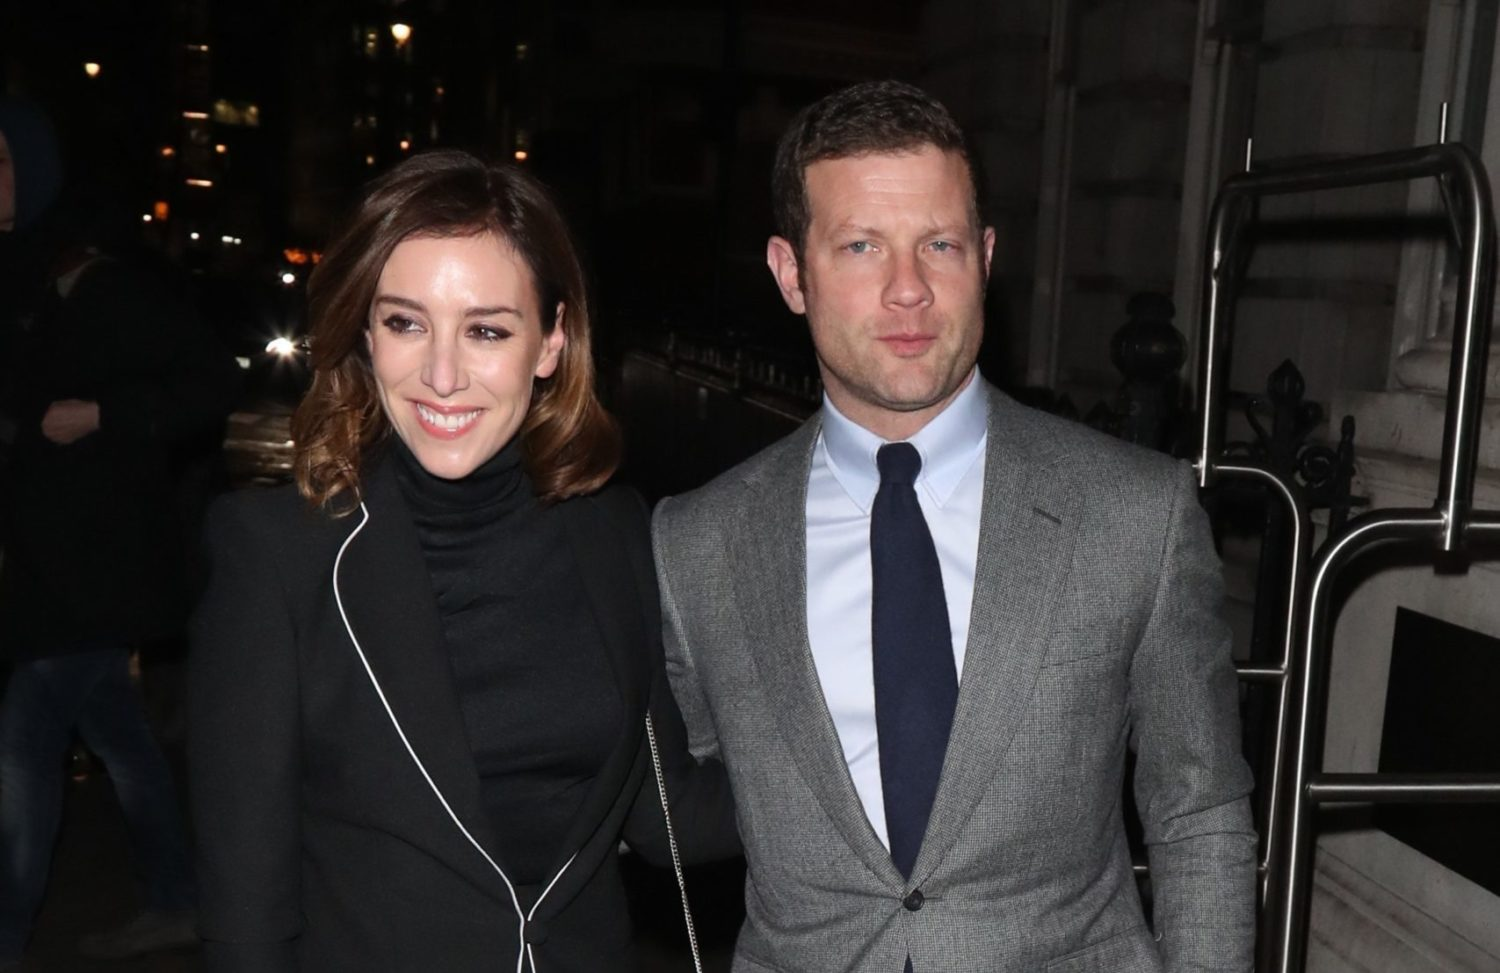 Dermot O'Leary and wife Dee throw 'summer solstice' baby shower with celebrity pals